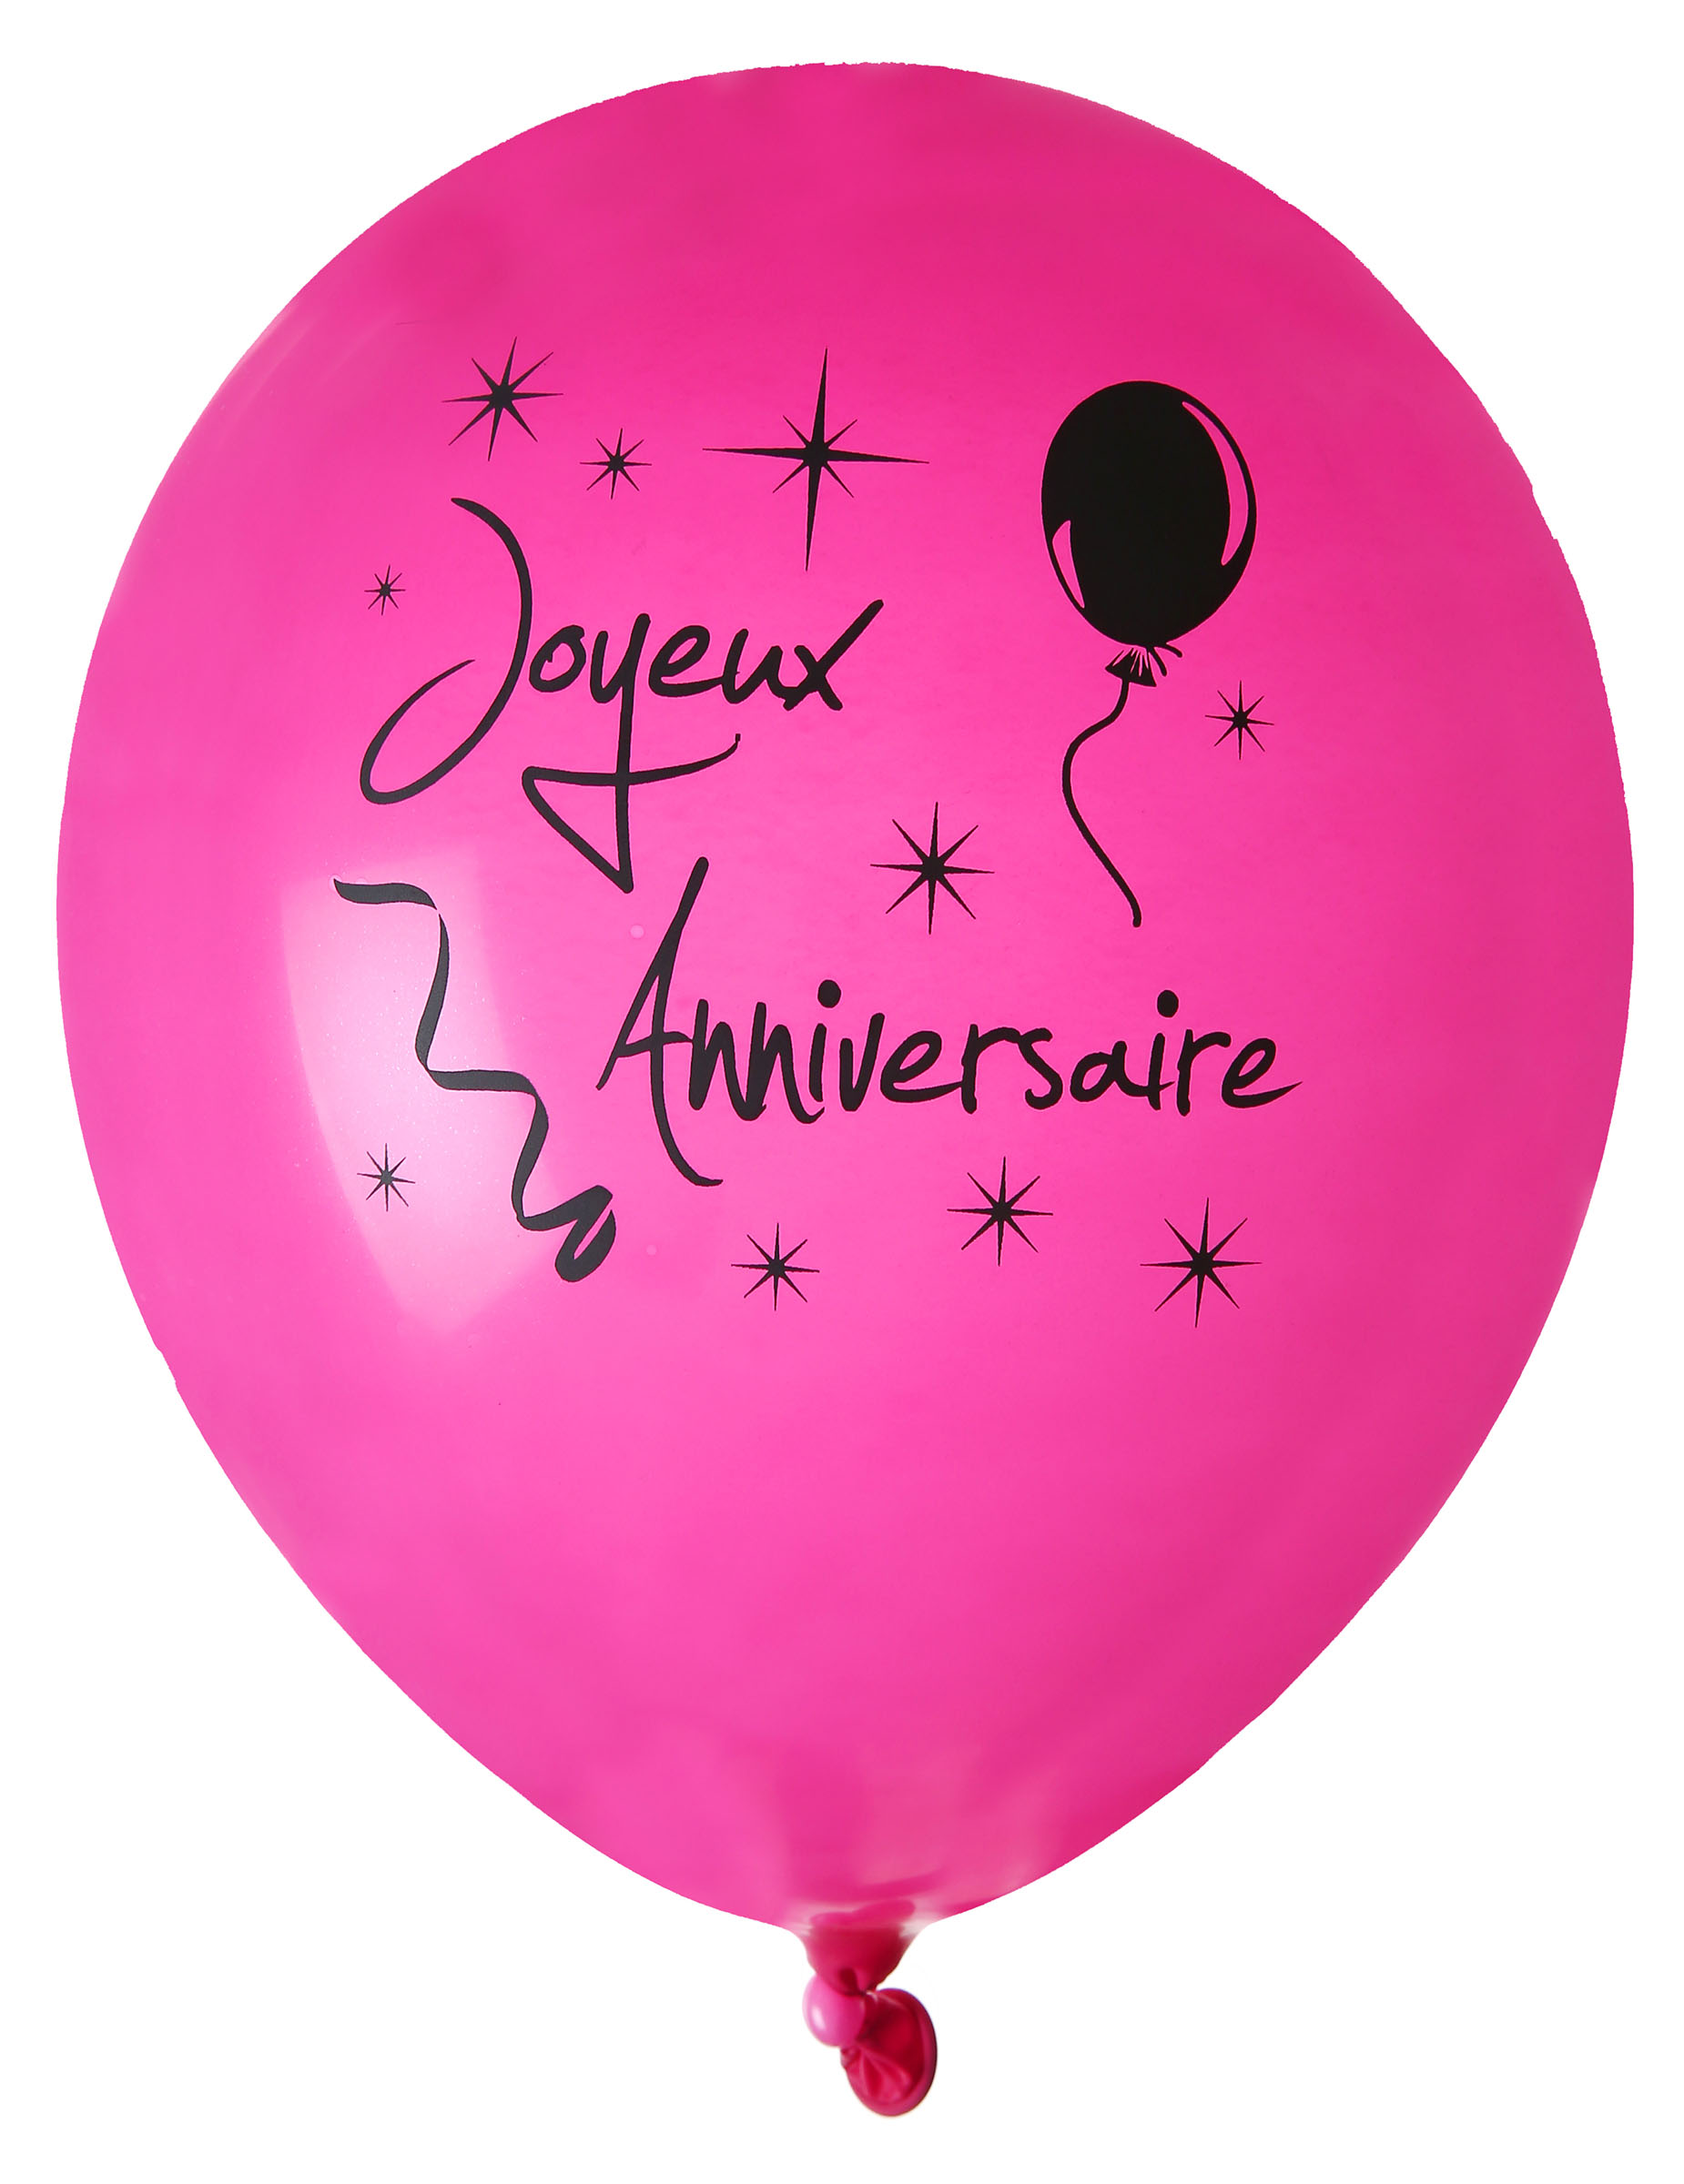 8 ballons joyeux anniversaire fuschia d coration anniversaire et f tes th me sur vegaoo party. Black Bedroom Furniture Sets. Home Design Ideas